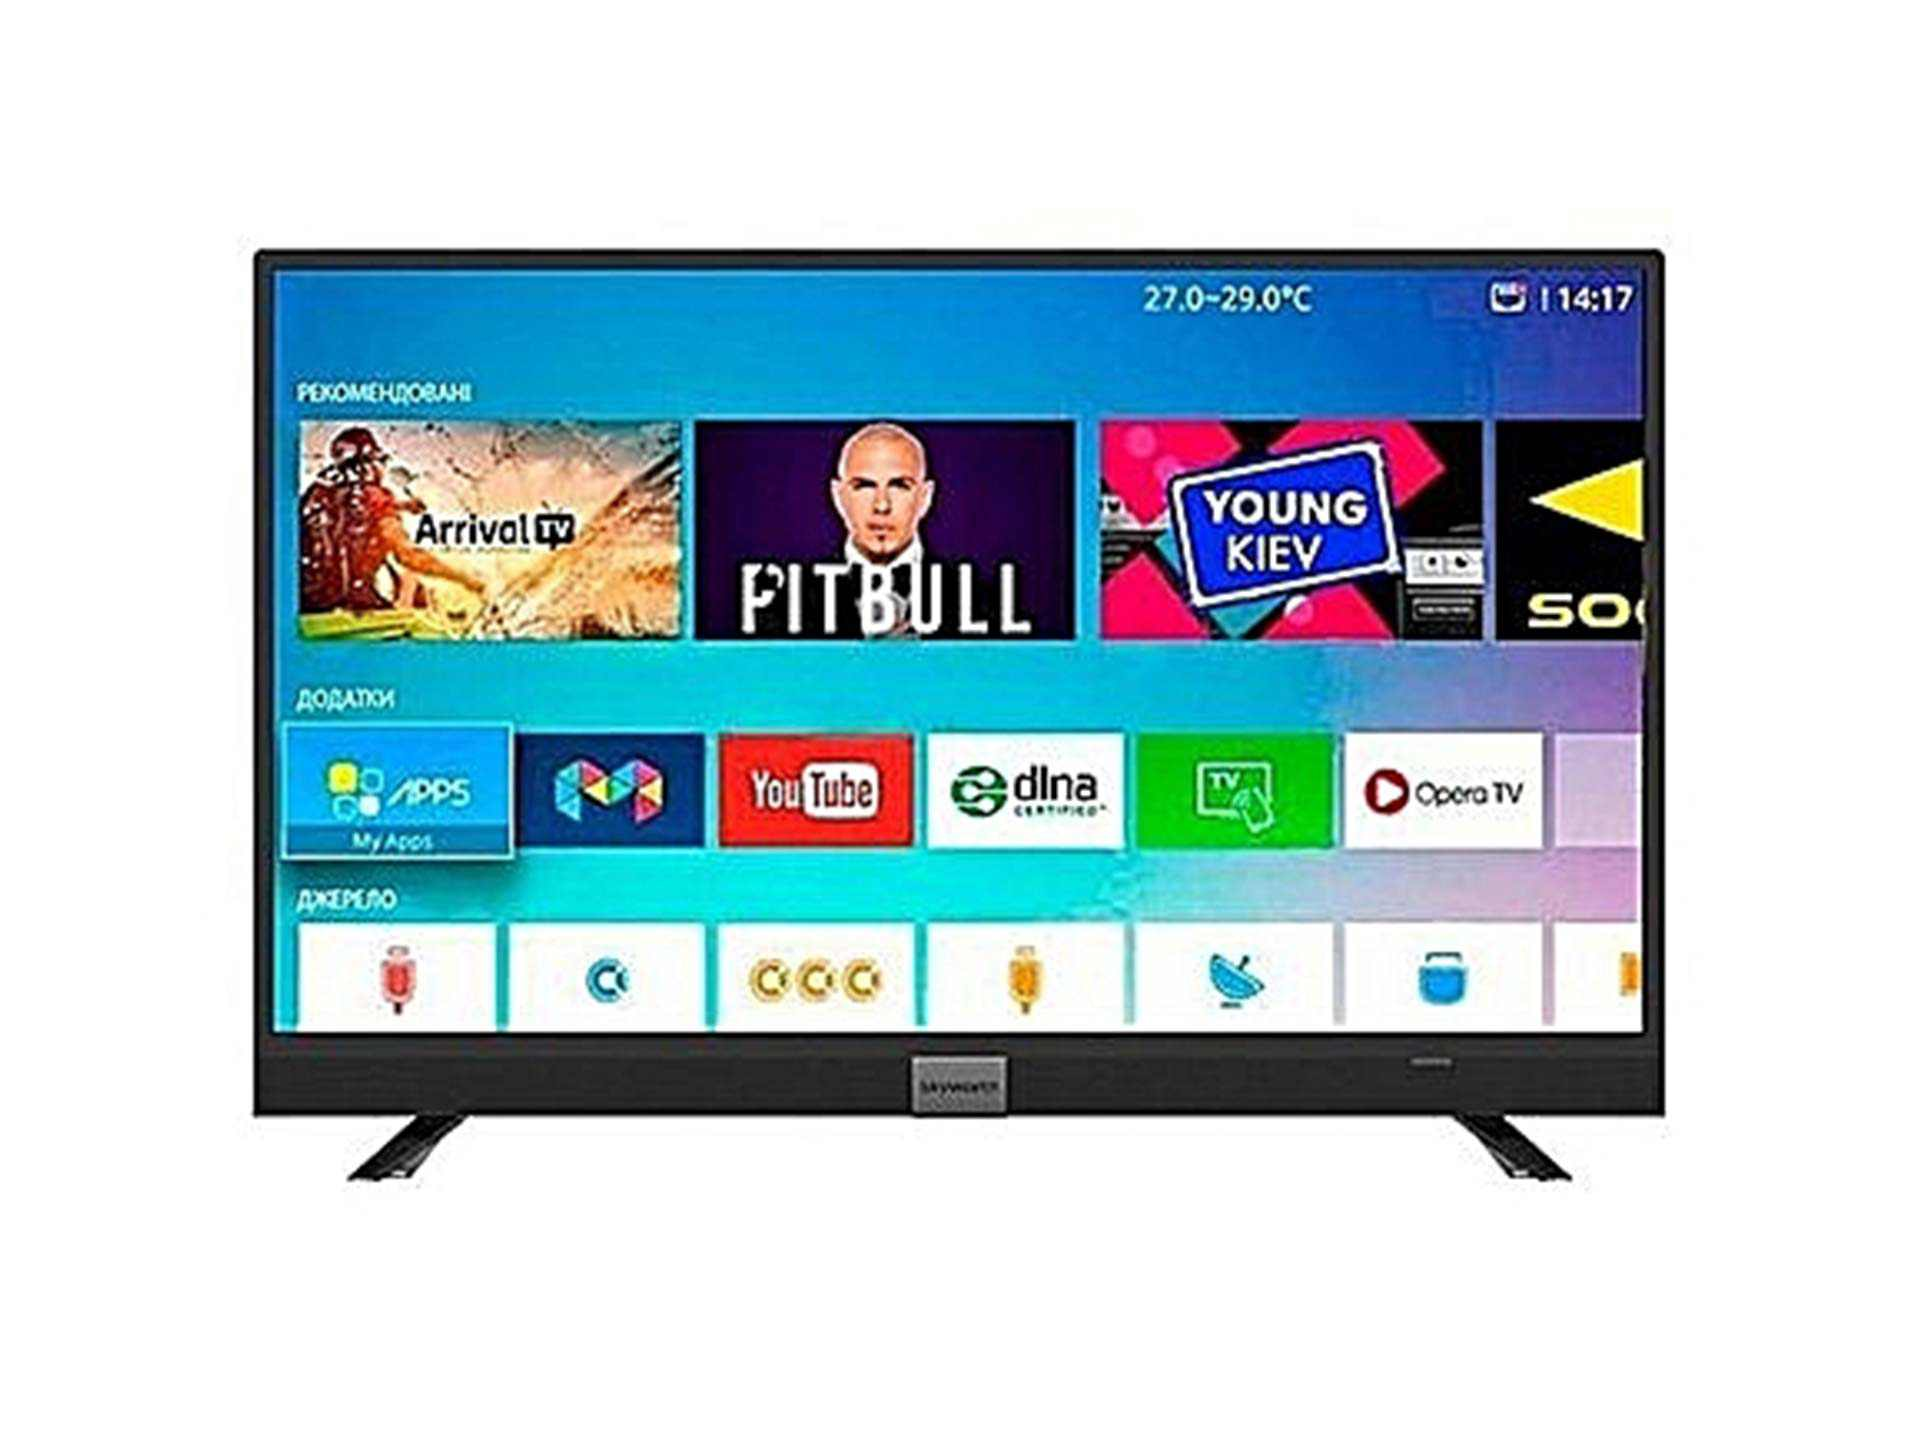 40 Inch Smart Tv Deals Kensoko Skyworth 40 Inch Smart Tv 40s3a31t Black Skyworth